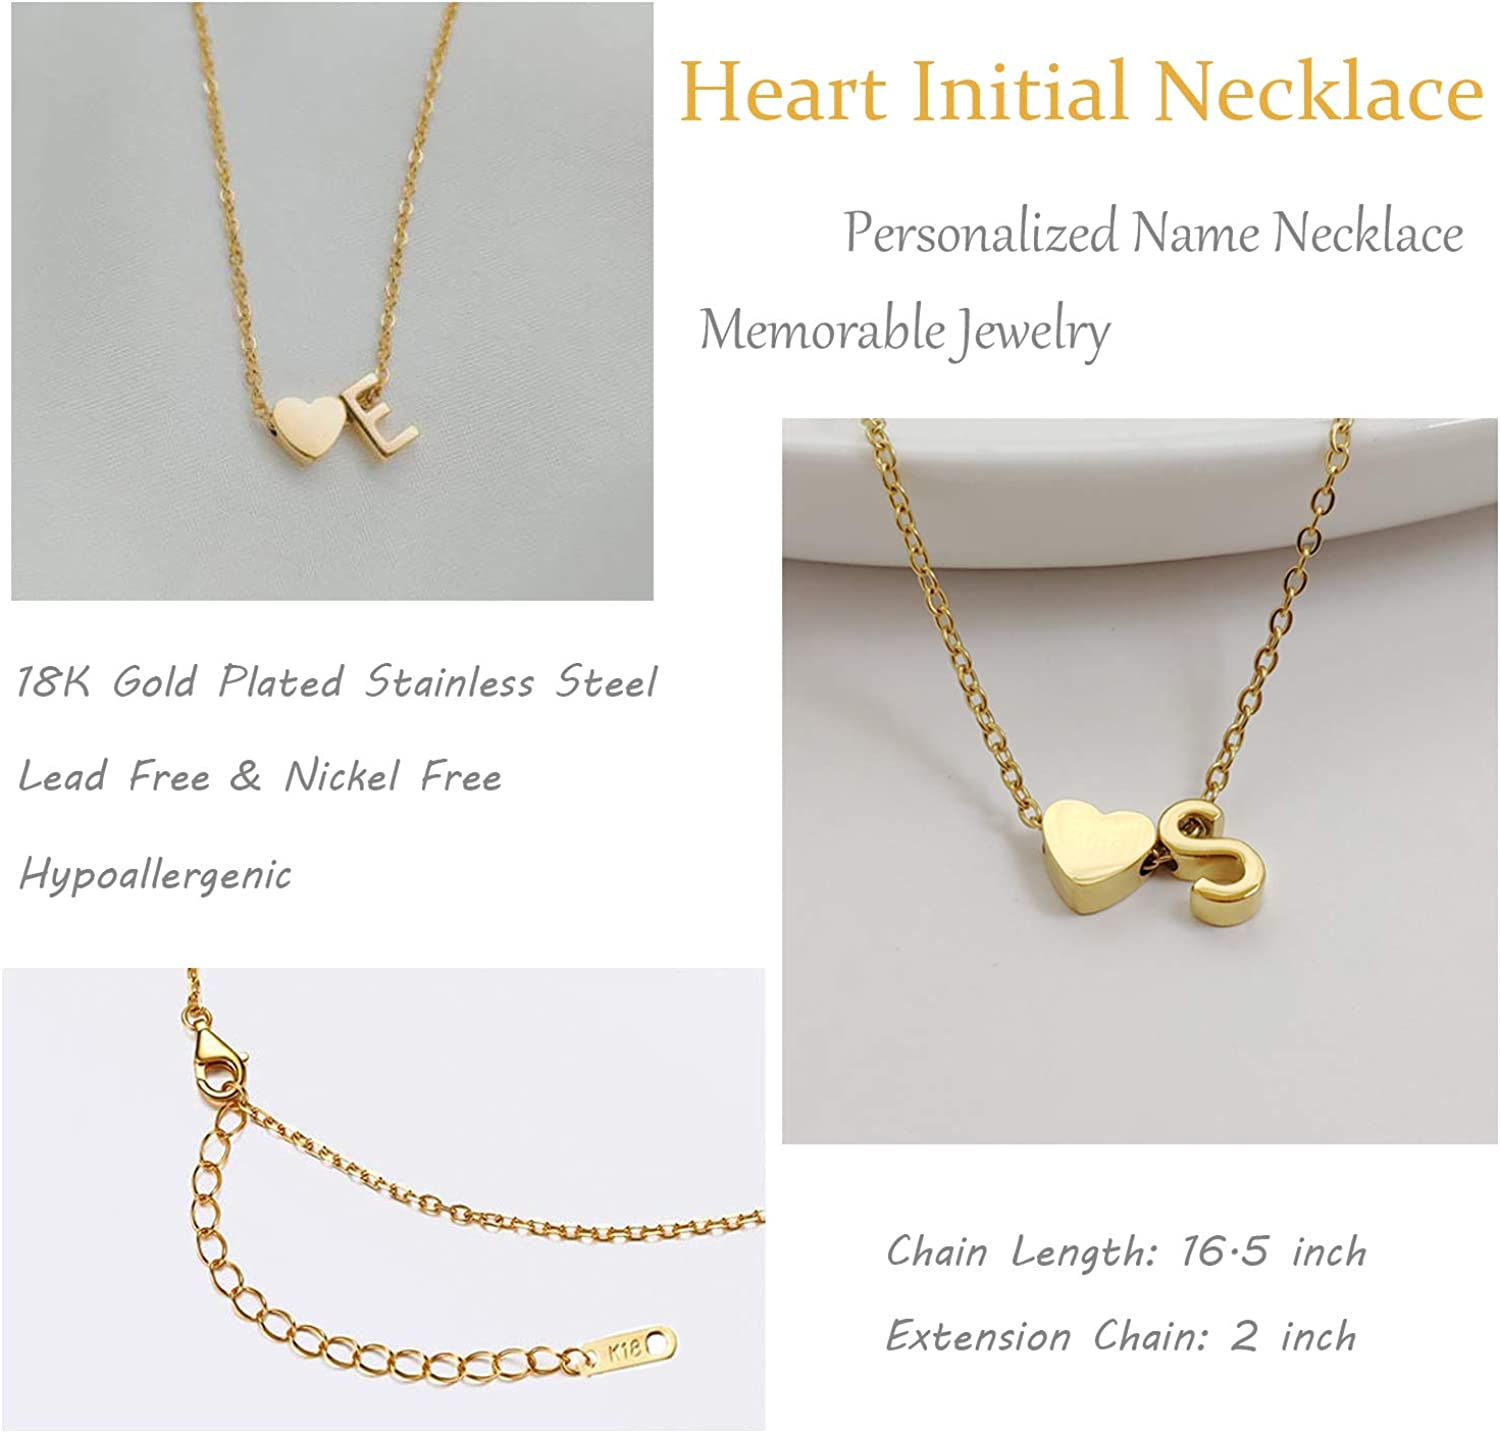 Glimmerst Initial Heart Necklace,18K Gold Plated Stainless Steel Tiny Heart Letter Necklace Personalized Monogram Name Necklace for Women Girls